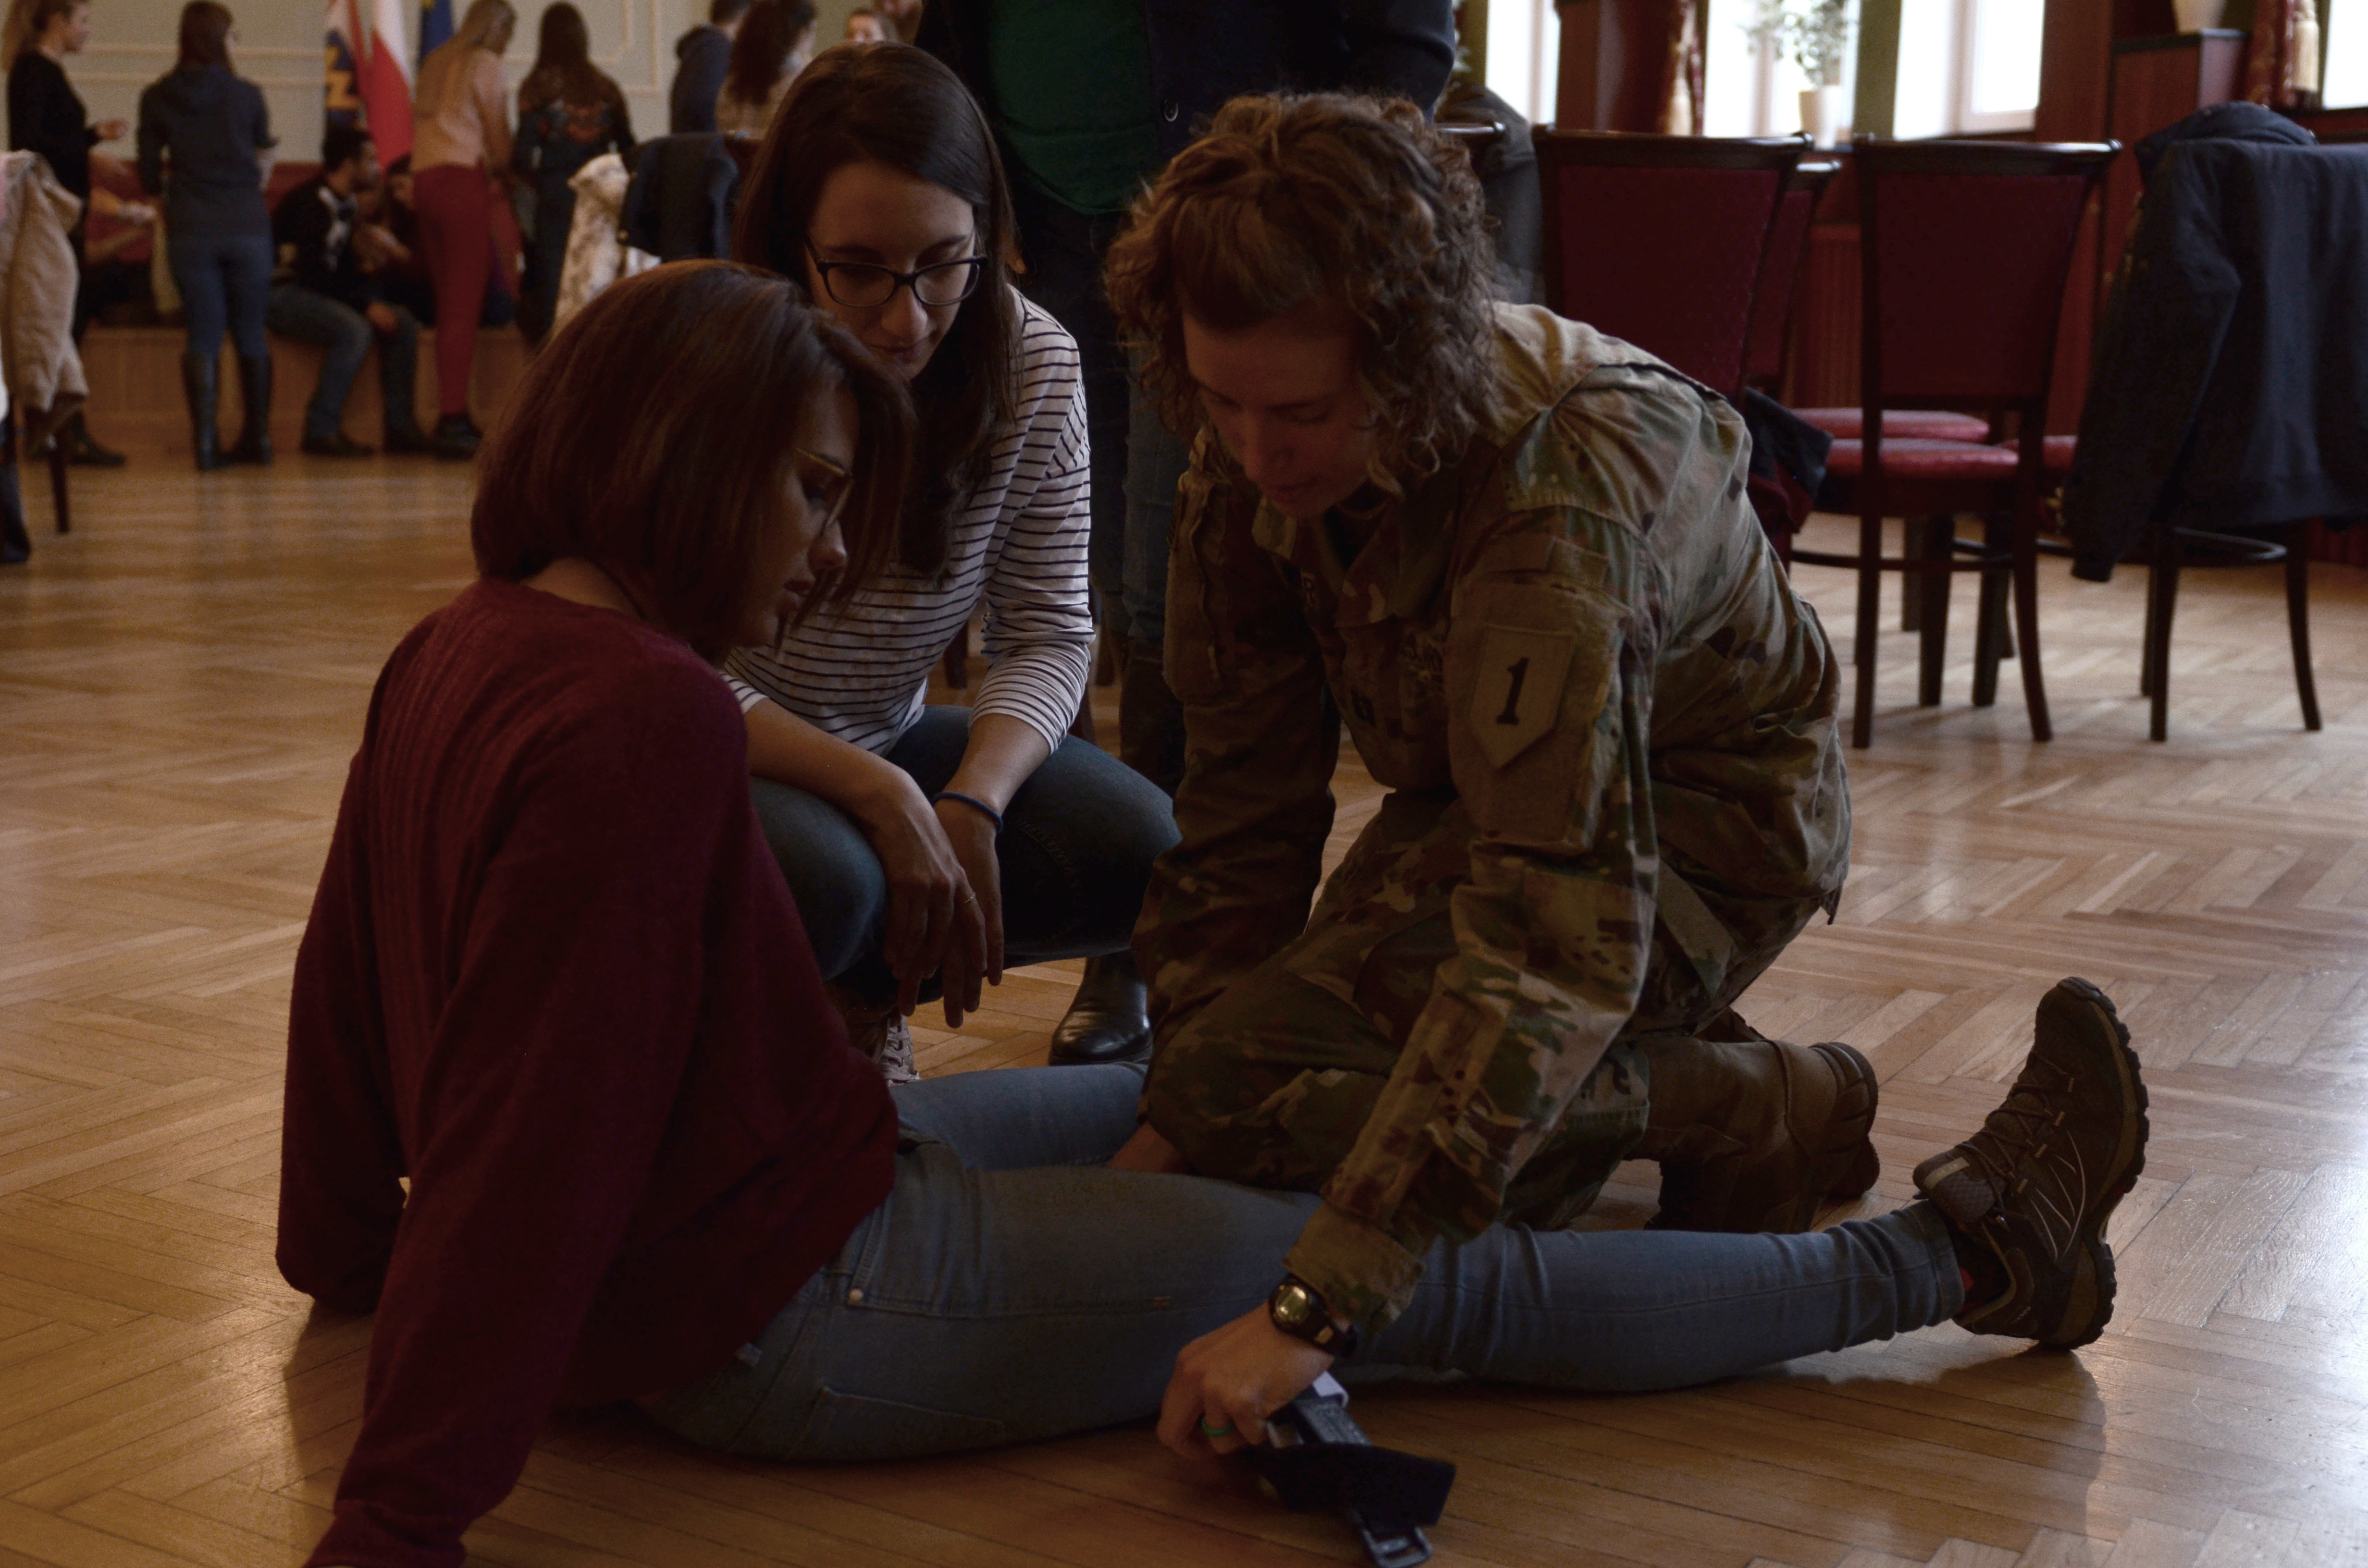 ŻARY, Poland — U.S. Army Capt. Jade Snader, brigade nurse, 299th Brigade Support Battalion, 2nd Armored Brigade Combat Team, 1st Infantry Division, demonstrates how to apply a tourniquet on the thigh, in a first aid class, city hall, Żary, Poland, Nov. 2. The class is taught by U.S. Soldiers from 2nd Armored Brigade Combat Team, 1st Infantry Division, and Polish soldiers from 34th Armored Cavalry Brigade, 11th Armored Cavalry Division. The class of 40 representatives attend the European Union project called Collaborative Consumption- Versus Wasting. The class is a refresher course to instill knowledge and confidence in participants to take life-saving action in unexpected emergencies. The  2nd Armored Brigade Combat Team, 1st Infantry Division, is currently in Europe to support Atlantic Resolve. Atlantic Resolve is a U.S. endeavor to fulfill NATO commitments by rotating U.S. -based units throughout the European theater and training with NATO Allies and partners. (U.S. Army photo by Sgt. Shiloh Capers)